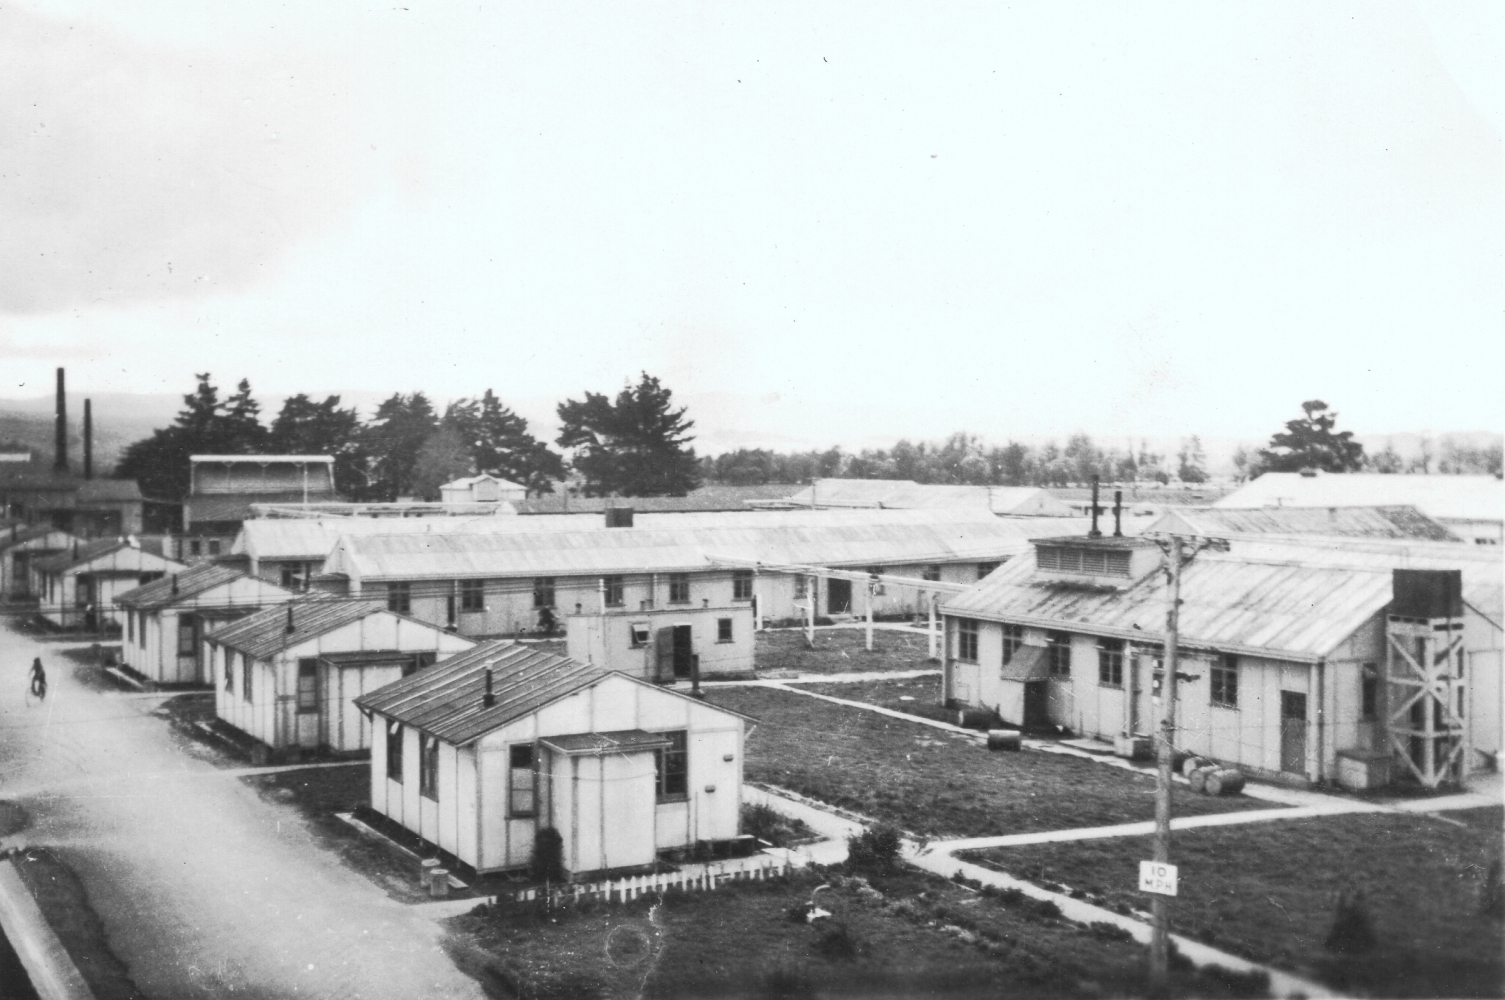 Closer  shot of the teachers' quarters. Several small prefabricated buildings with their vertical joints clearly visible, sitting  between a road and patches of lawn.